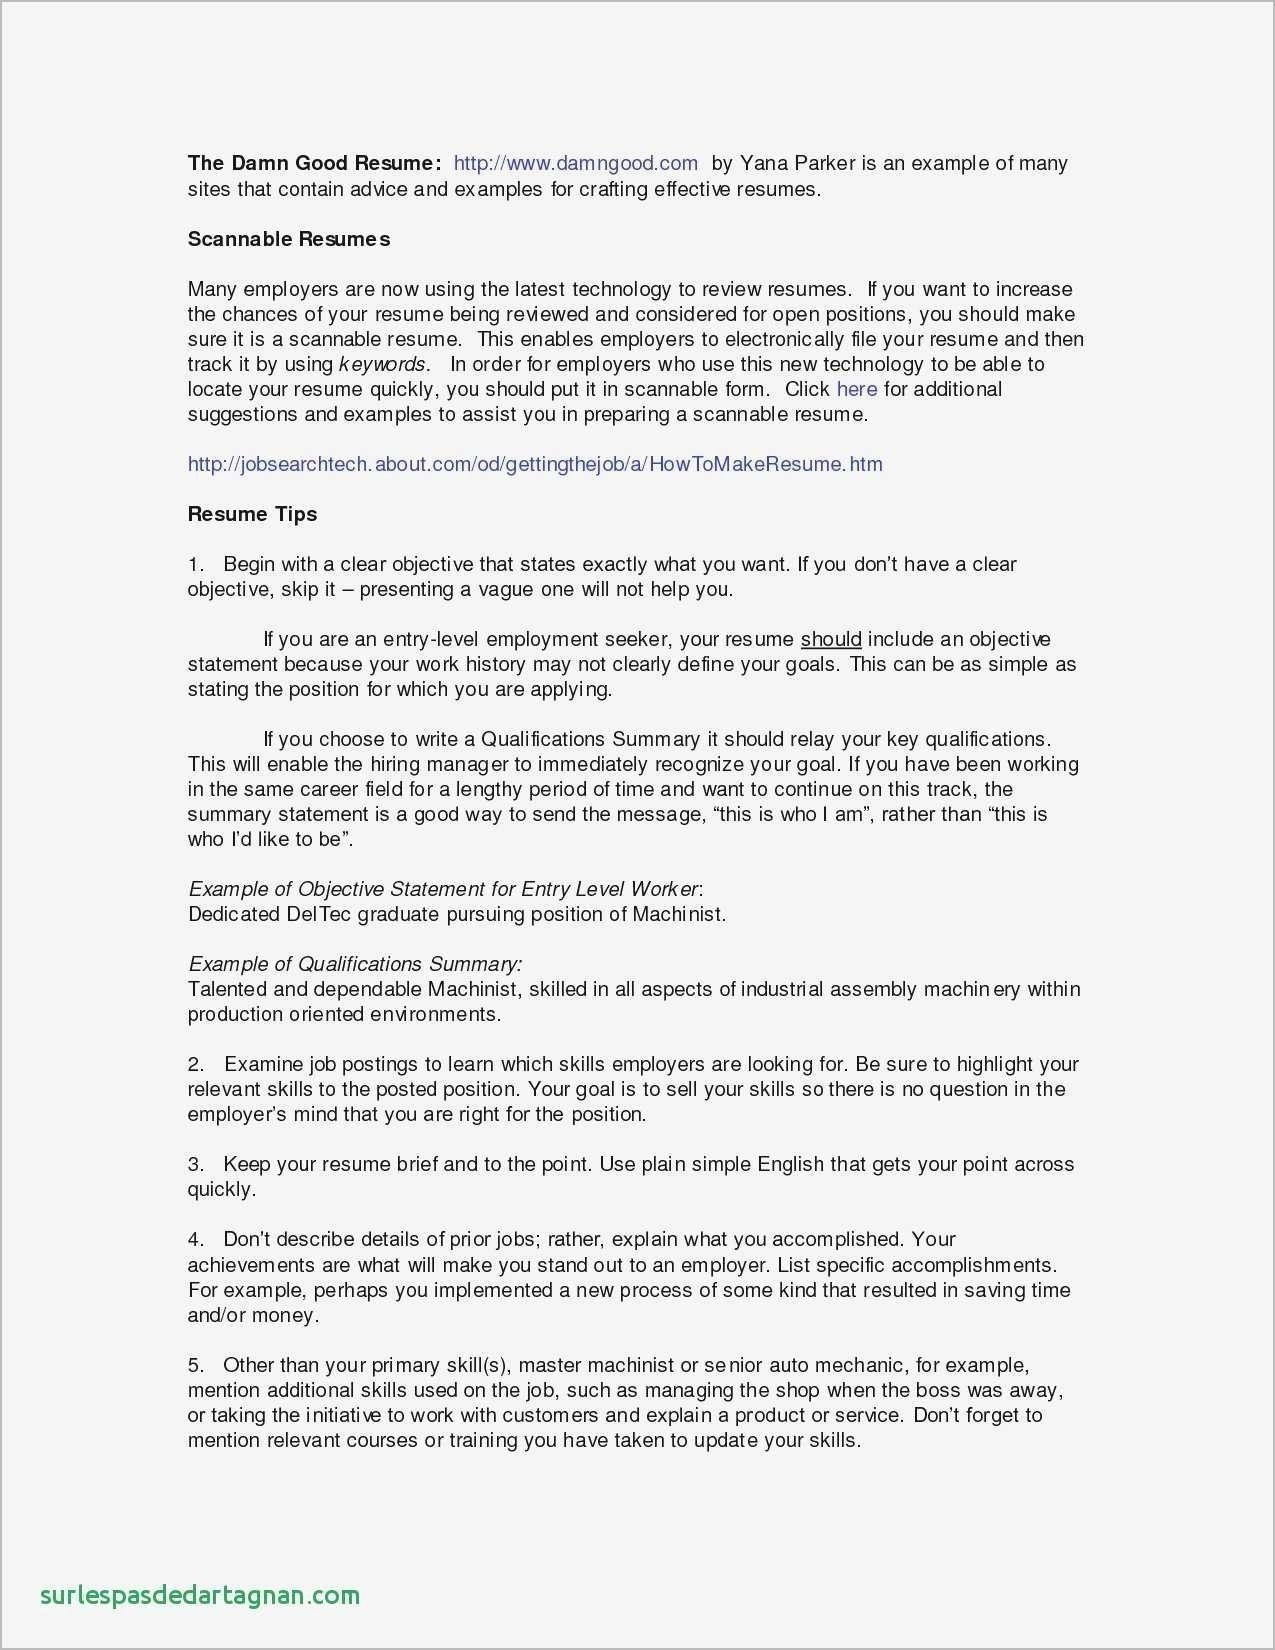 Currently Pursuing Degree On Resume Awesome Beautiful How Do You List Your Degree A Resume Resume Objective Examples Engineering Resume Cover Letter For Resume